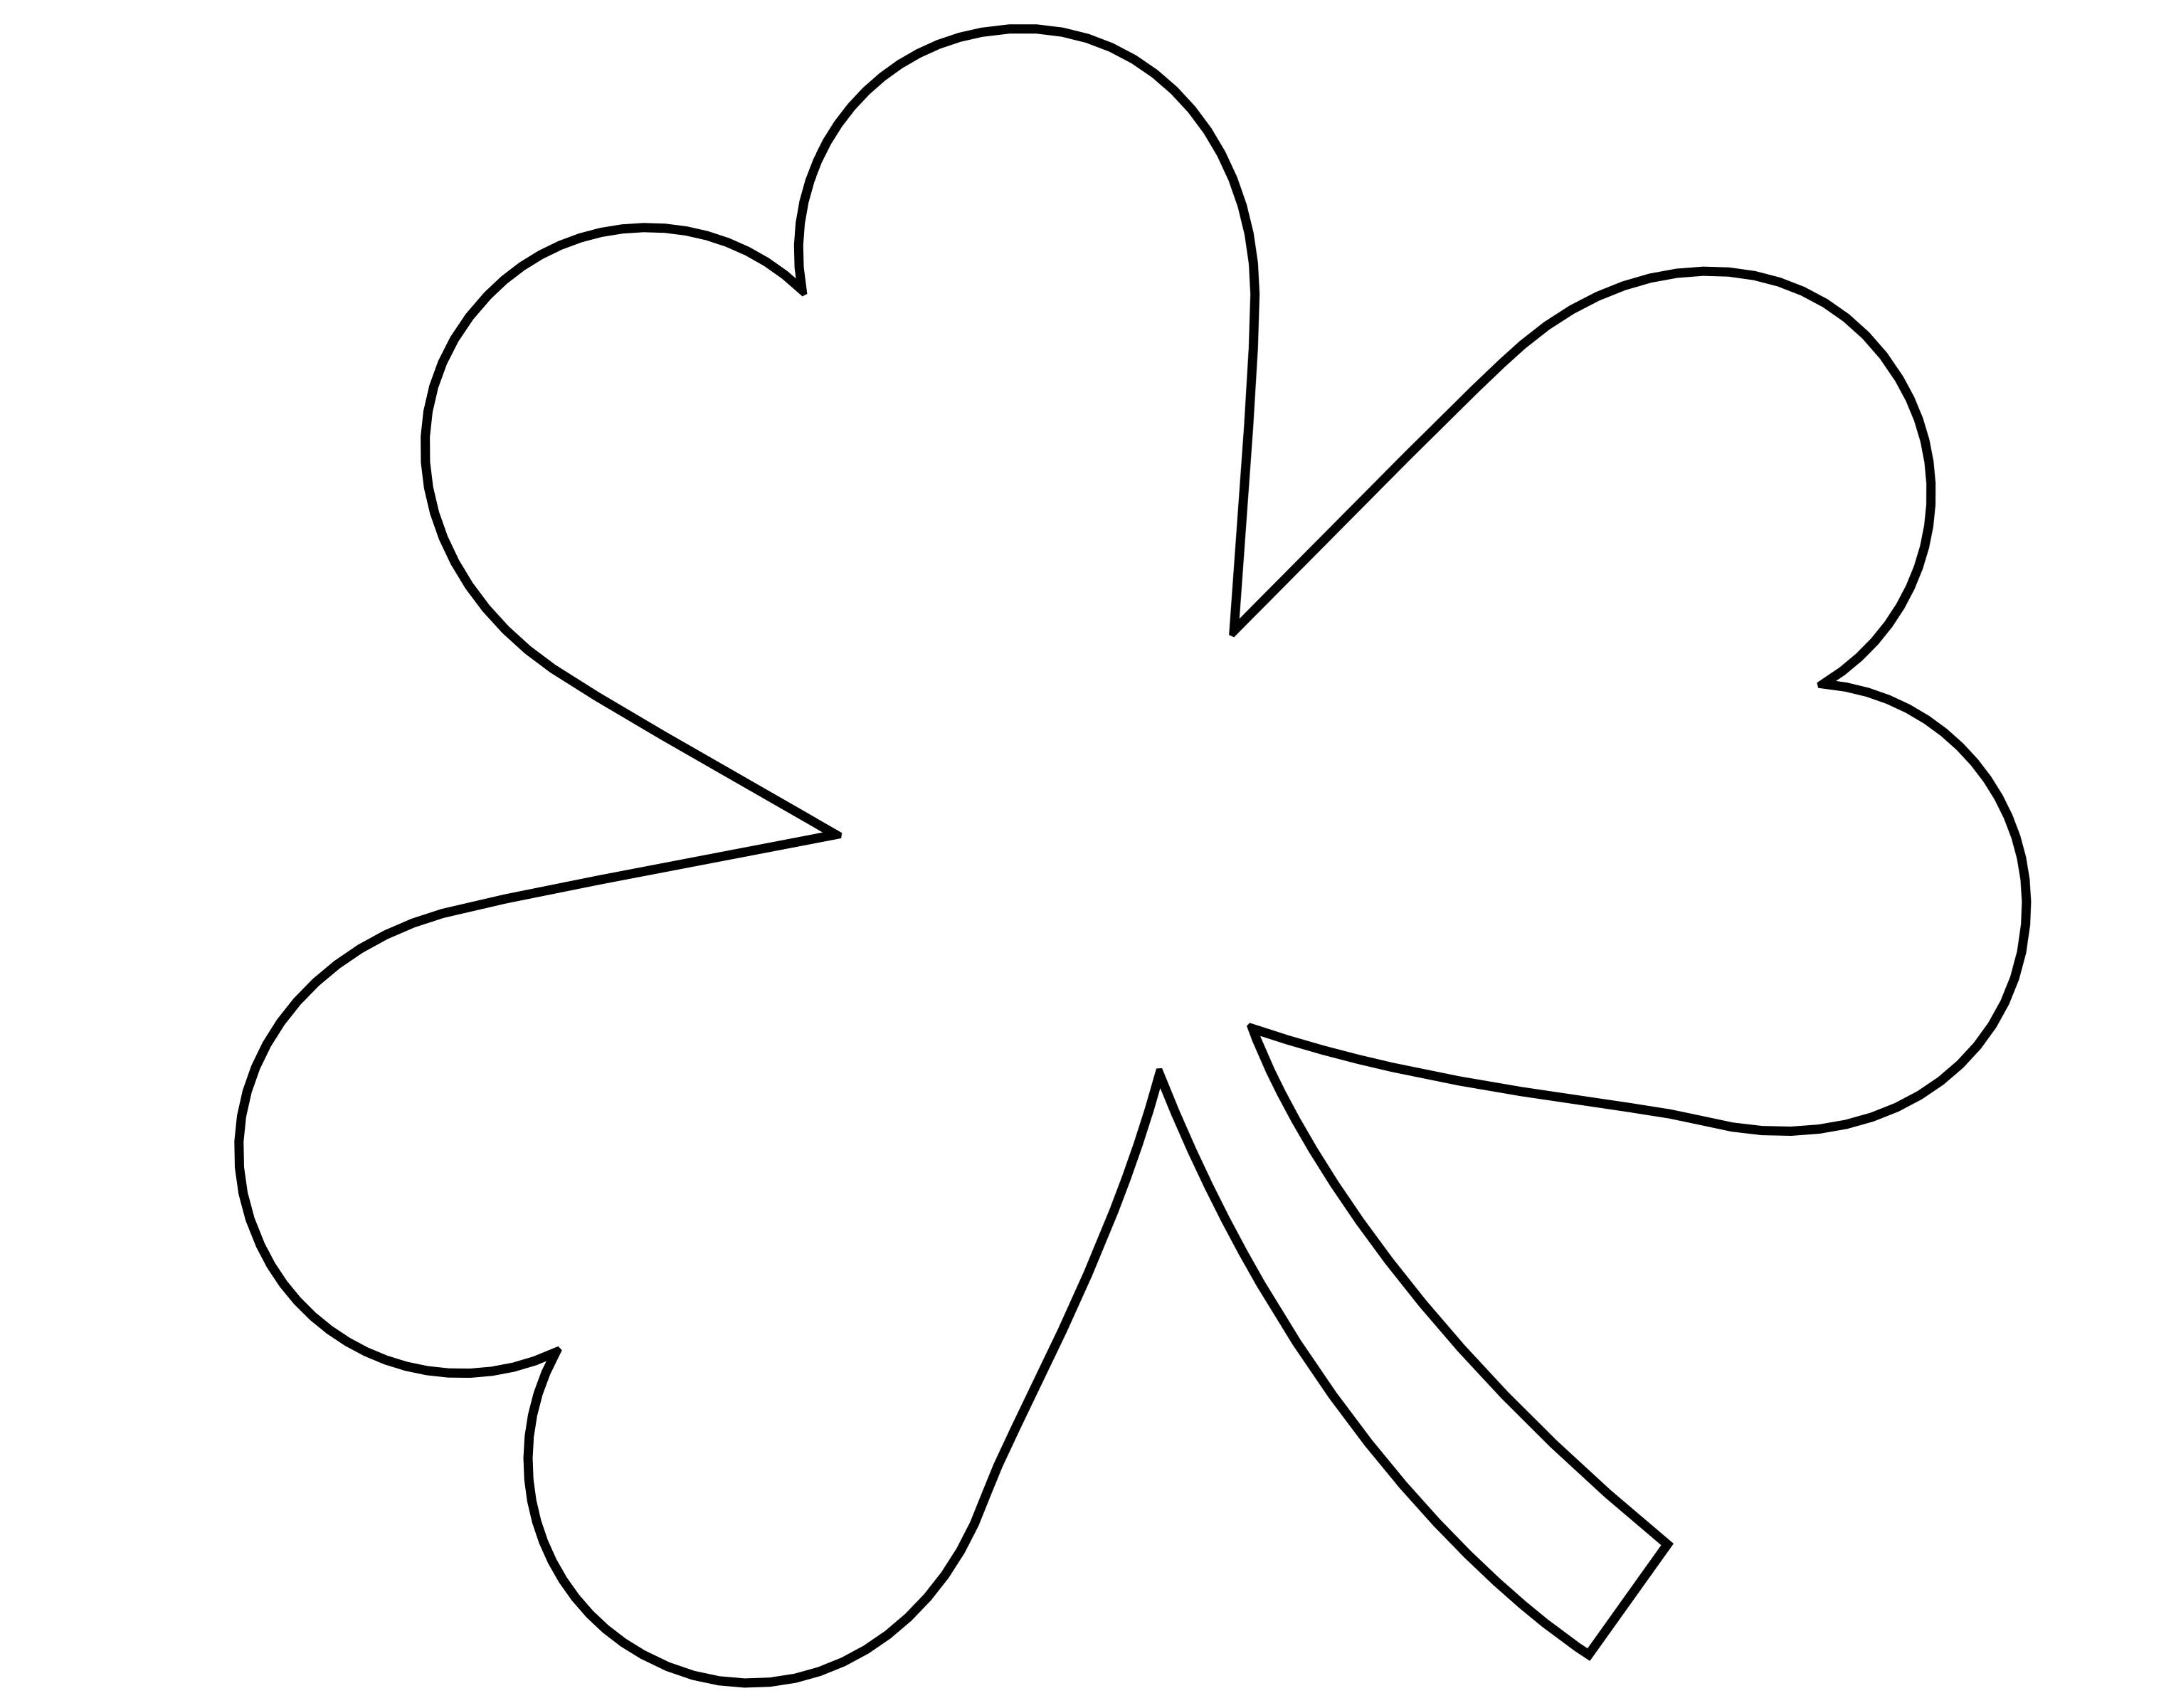 5 Best Images of Four Leaf Shamrock Template Printable - St ...